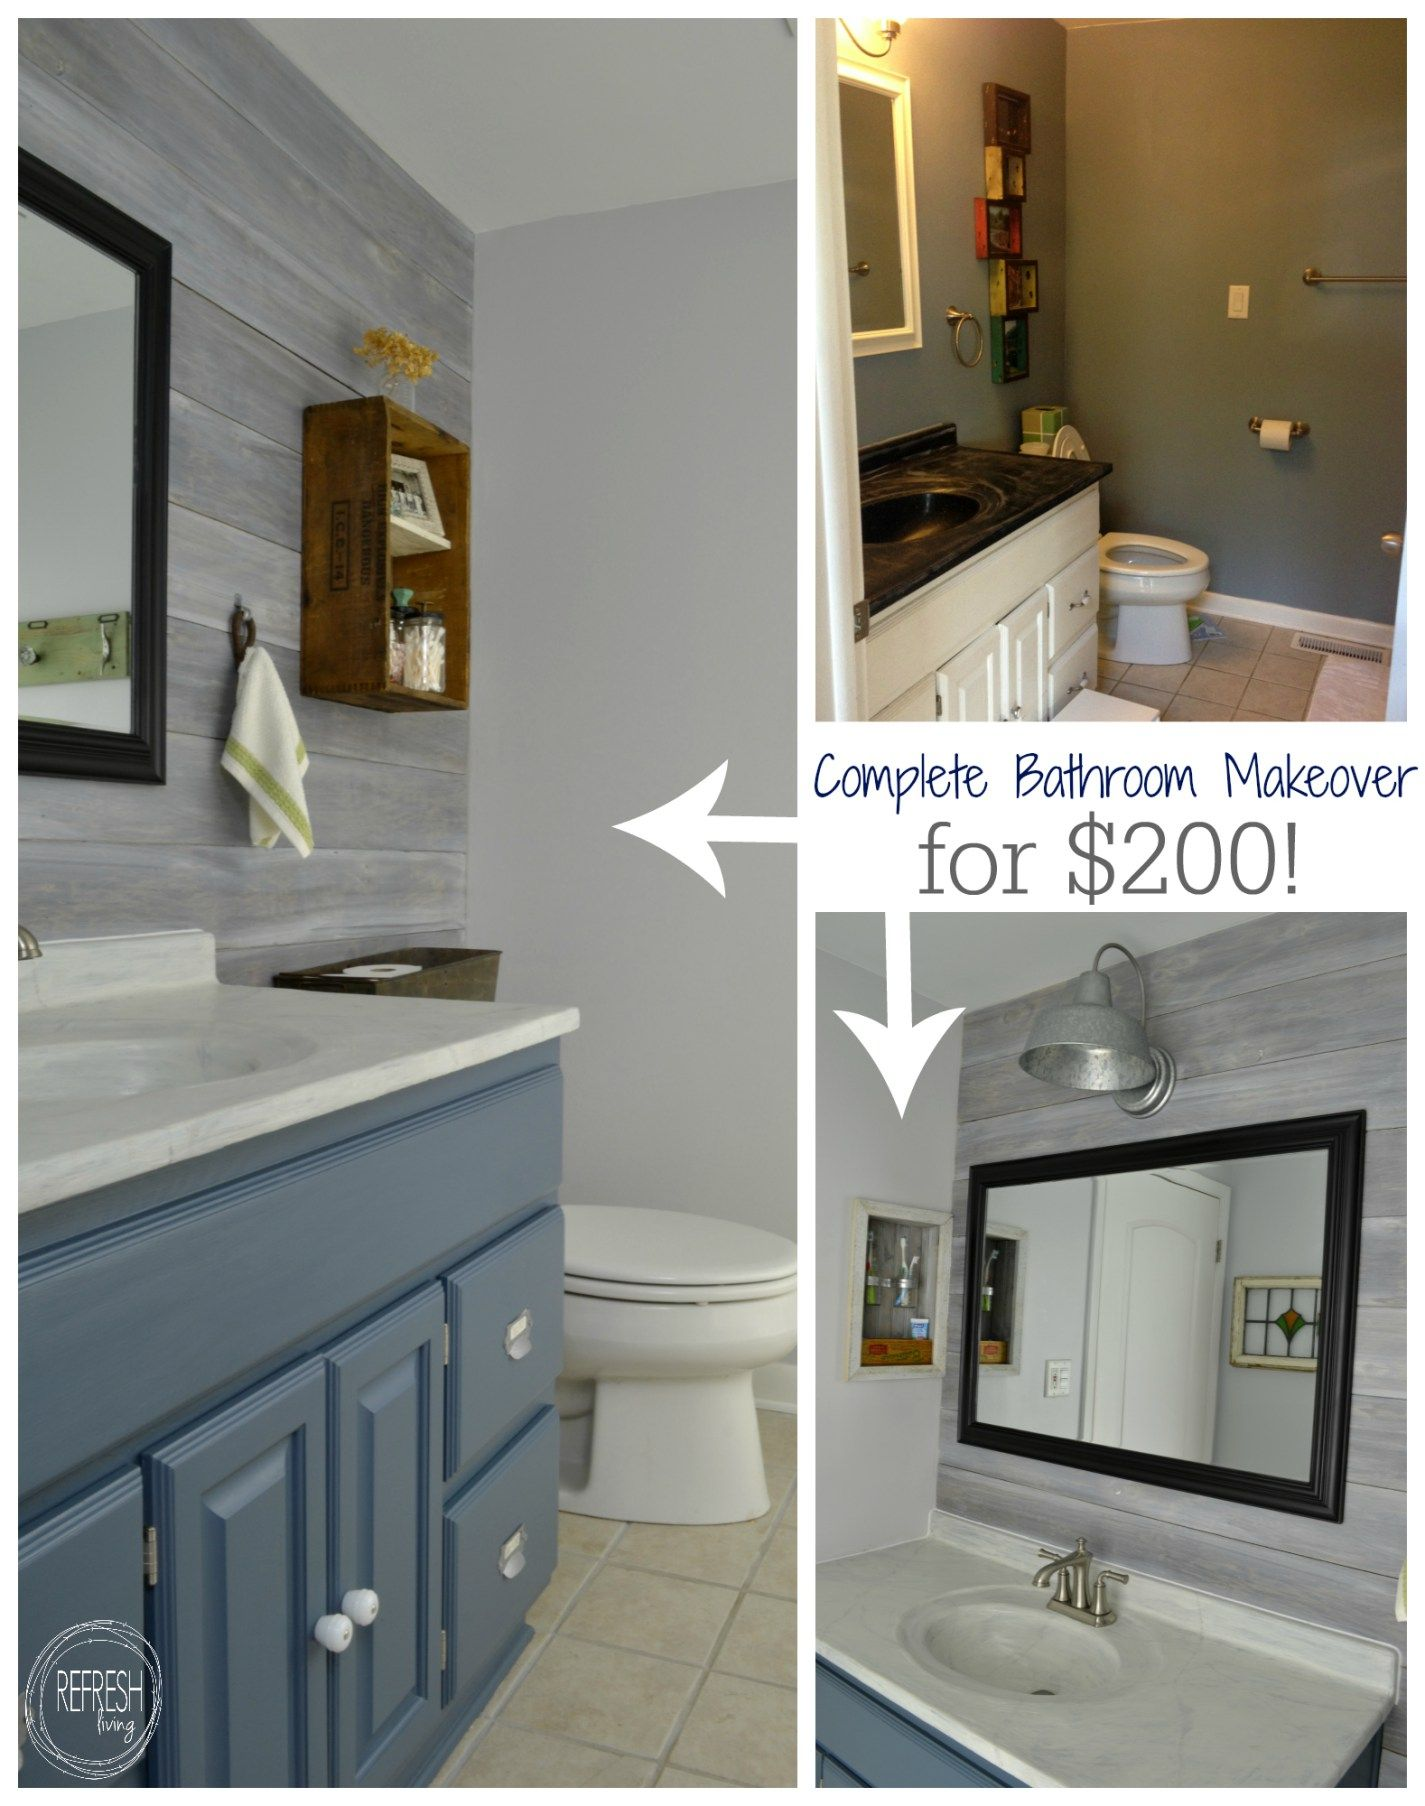 Bon Complete Bathroom Makeover For $200 | Budget Bathroom Remodel | Vintage  Rustic Industrial Bathroom | Modern Farmhouse Bathroom